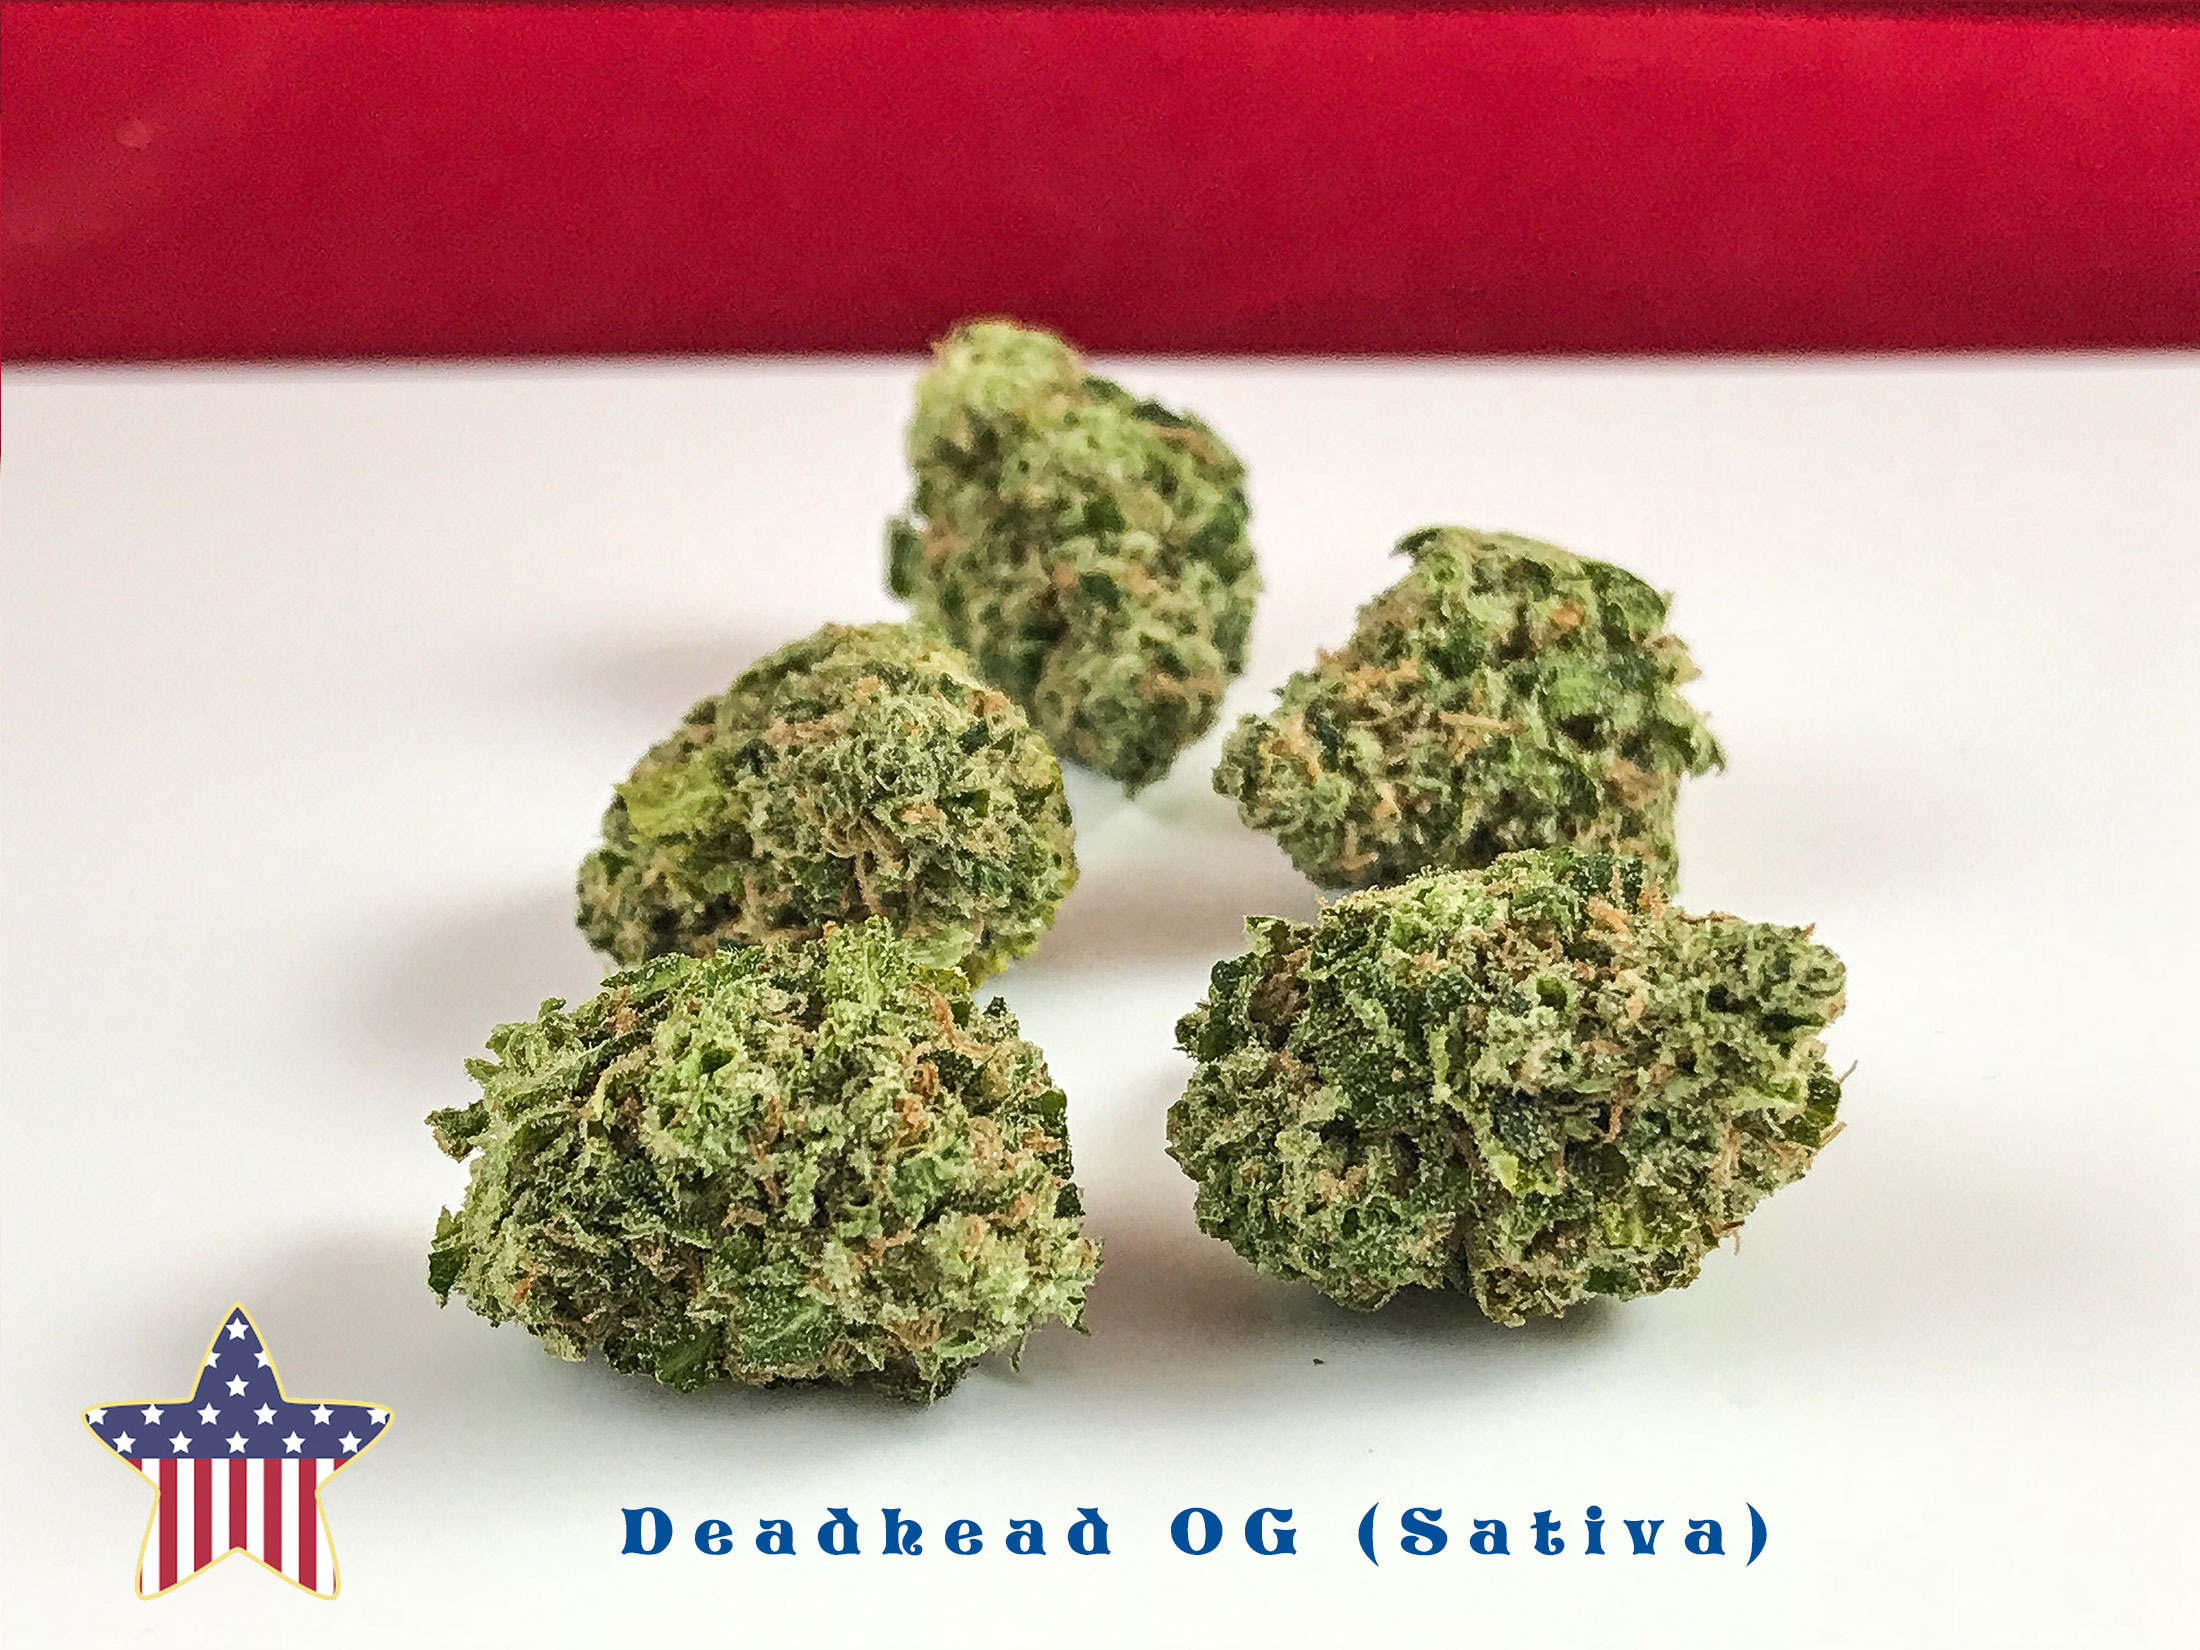 Deadhead-OG-Sativa-July-1